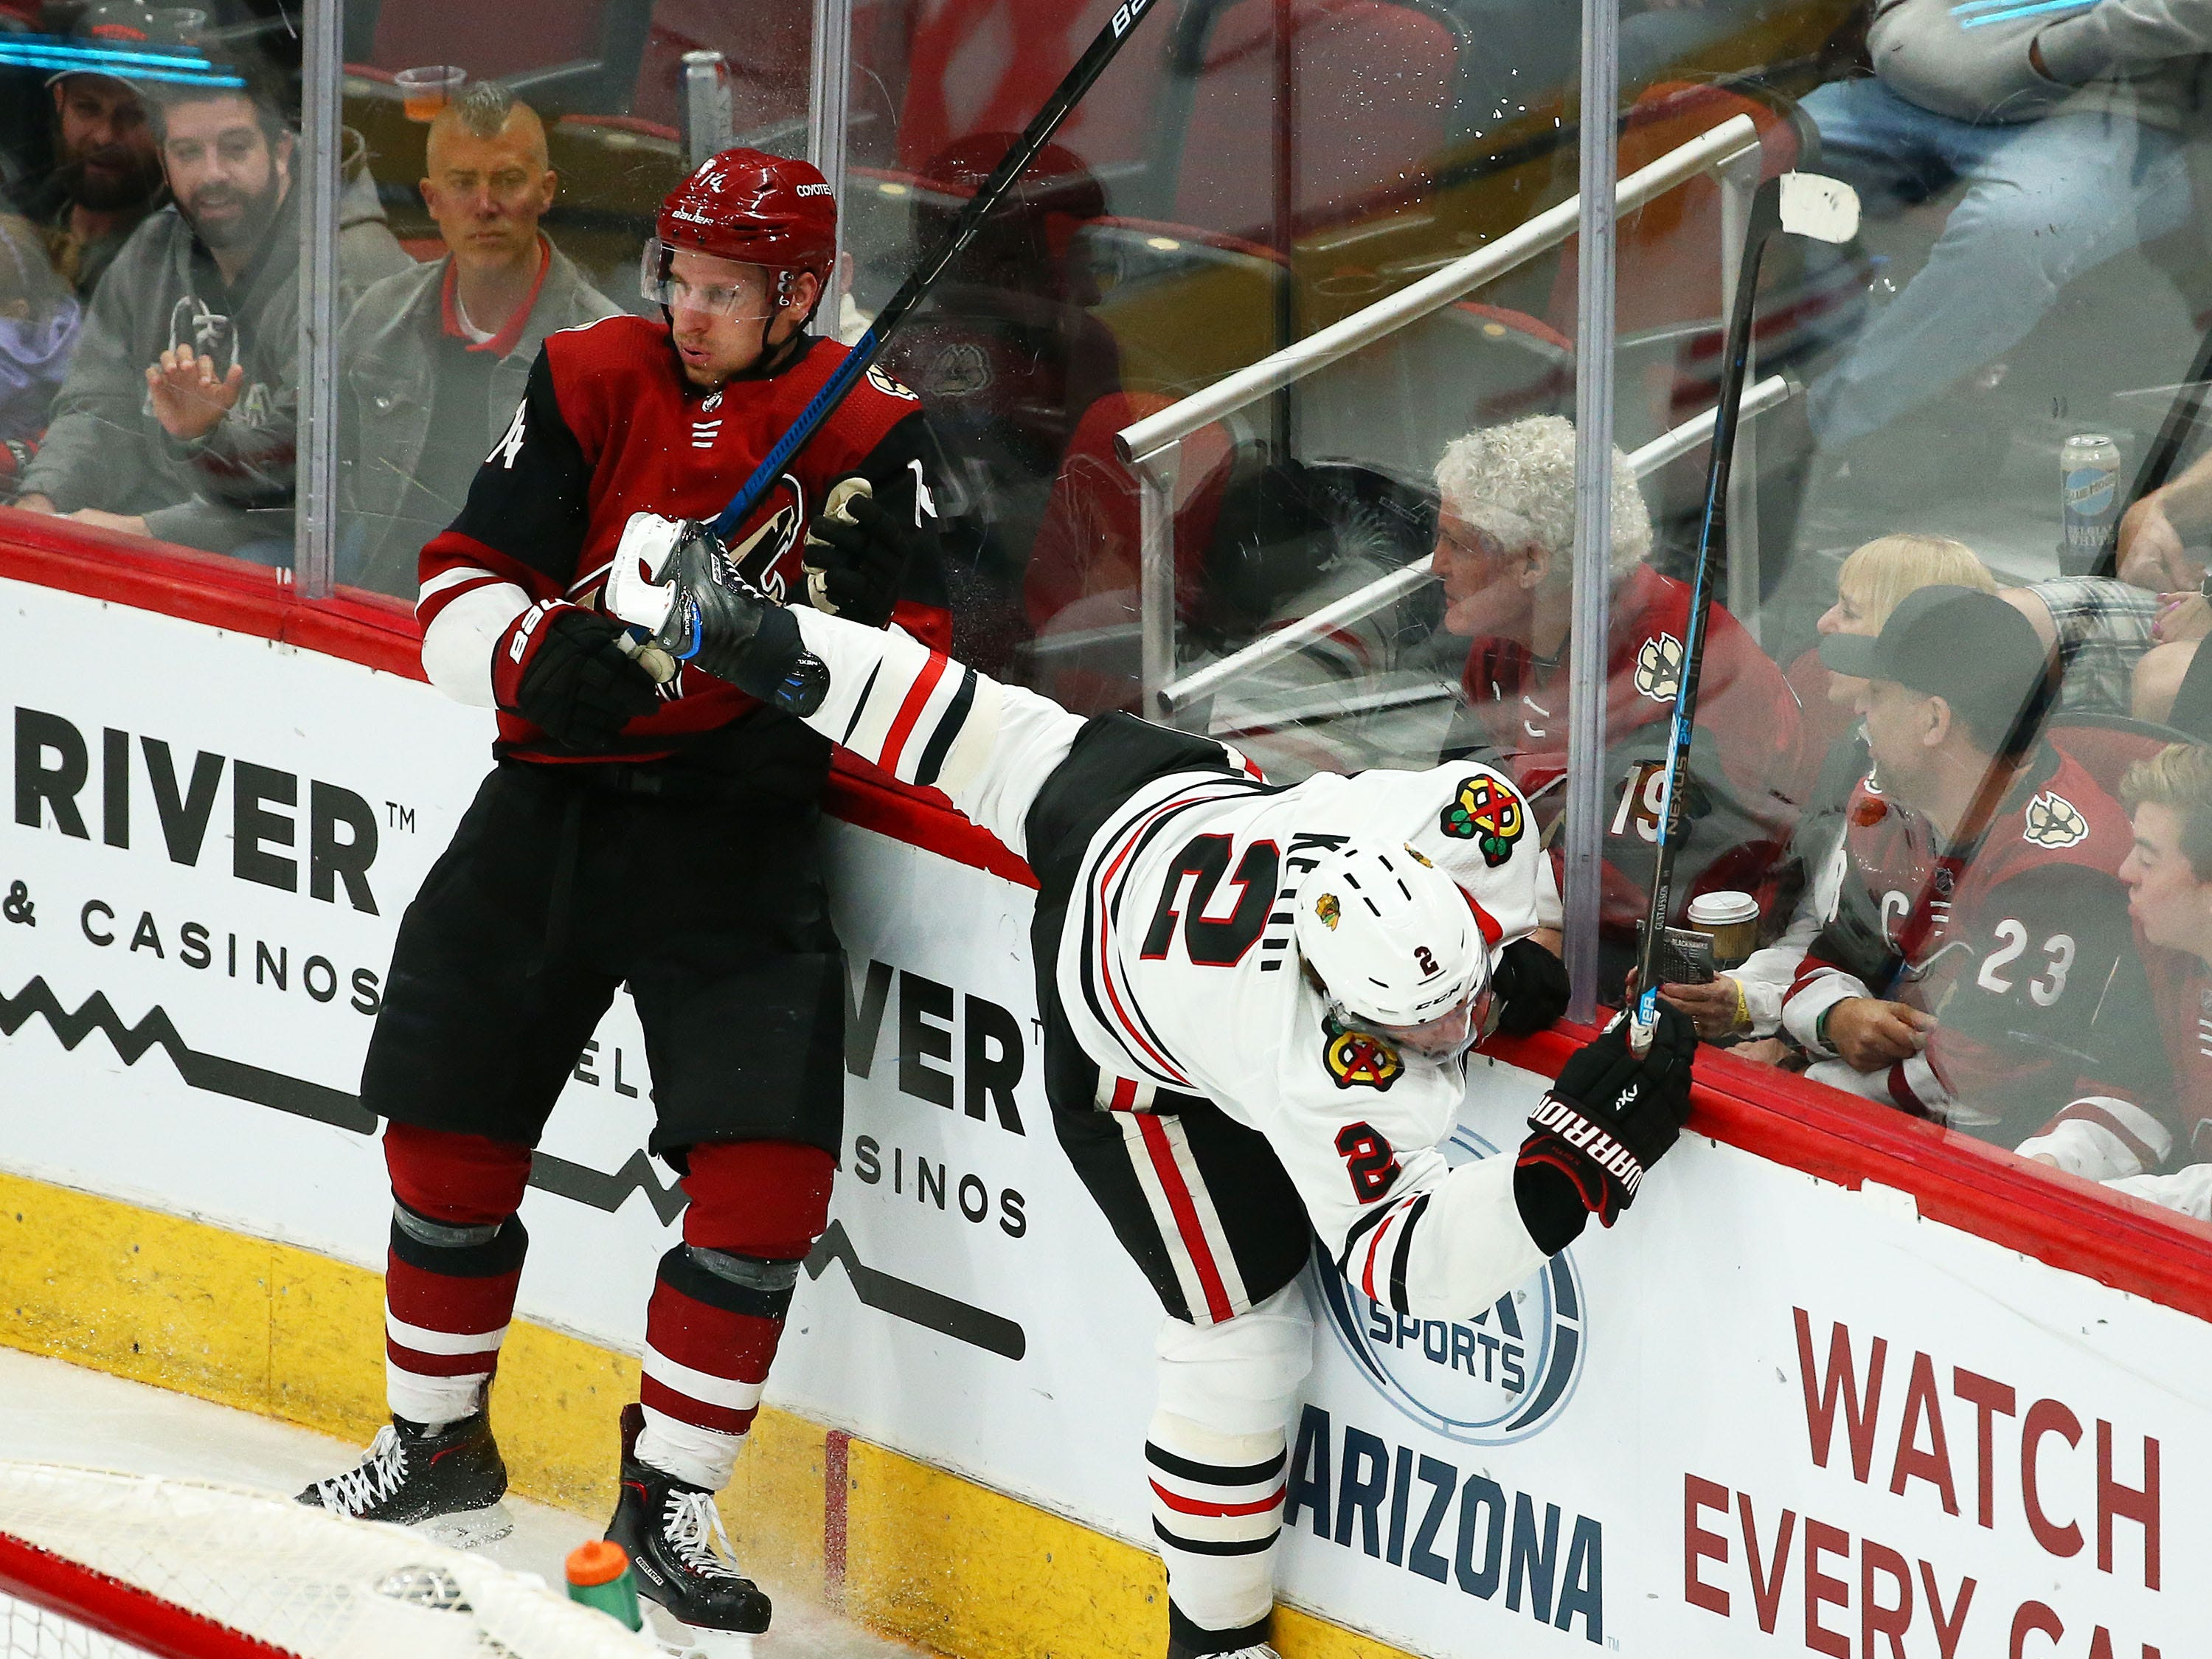 Arizona Coyotes right wing Richard Panik (14) checks Chicago Blackhawks defenseman Duncan Keith (2) into the boards in the third period on Mar. 26, 2019, at Gila River Arena in Glendale, Ariz.